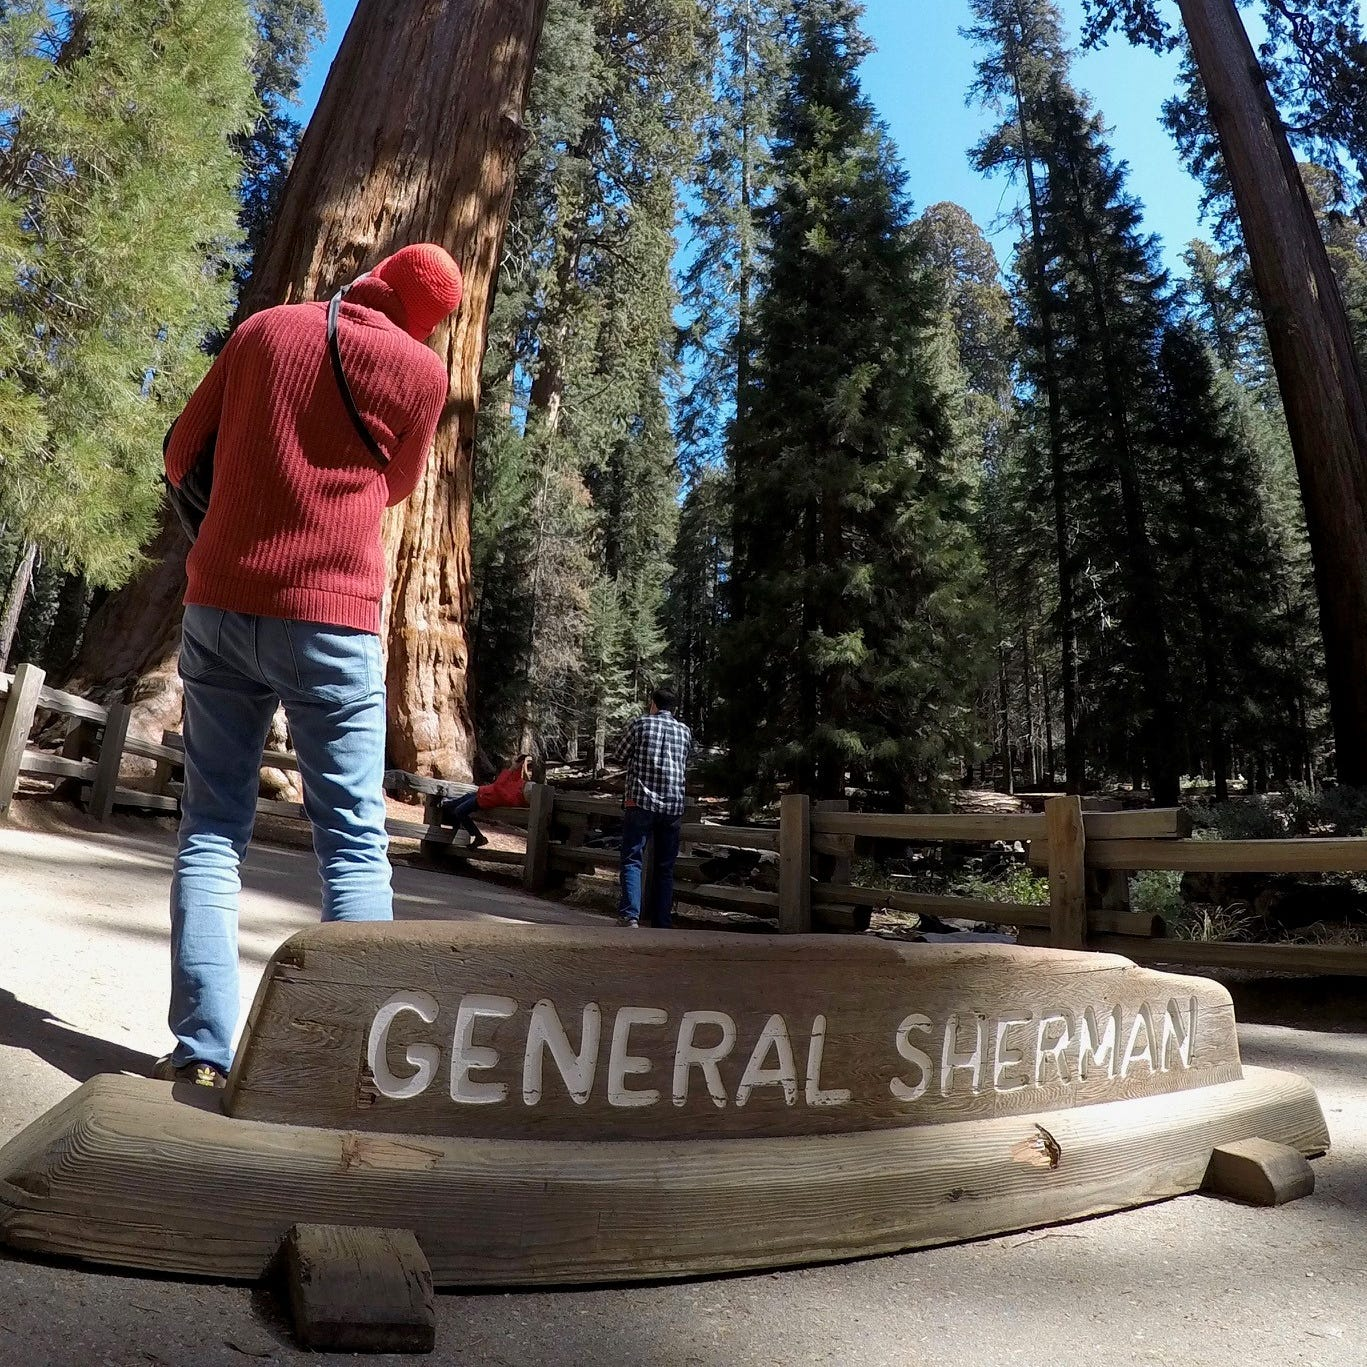 21st-century intrusion or necessary convenience? Cell service coming to Sequoia National Park